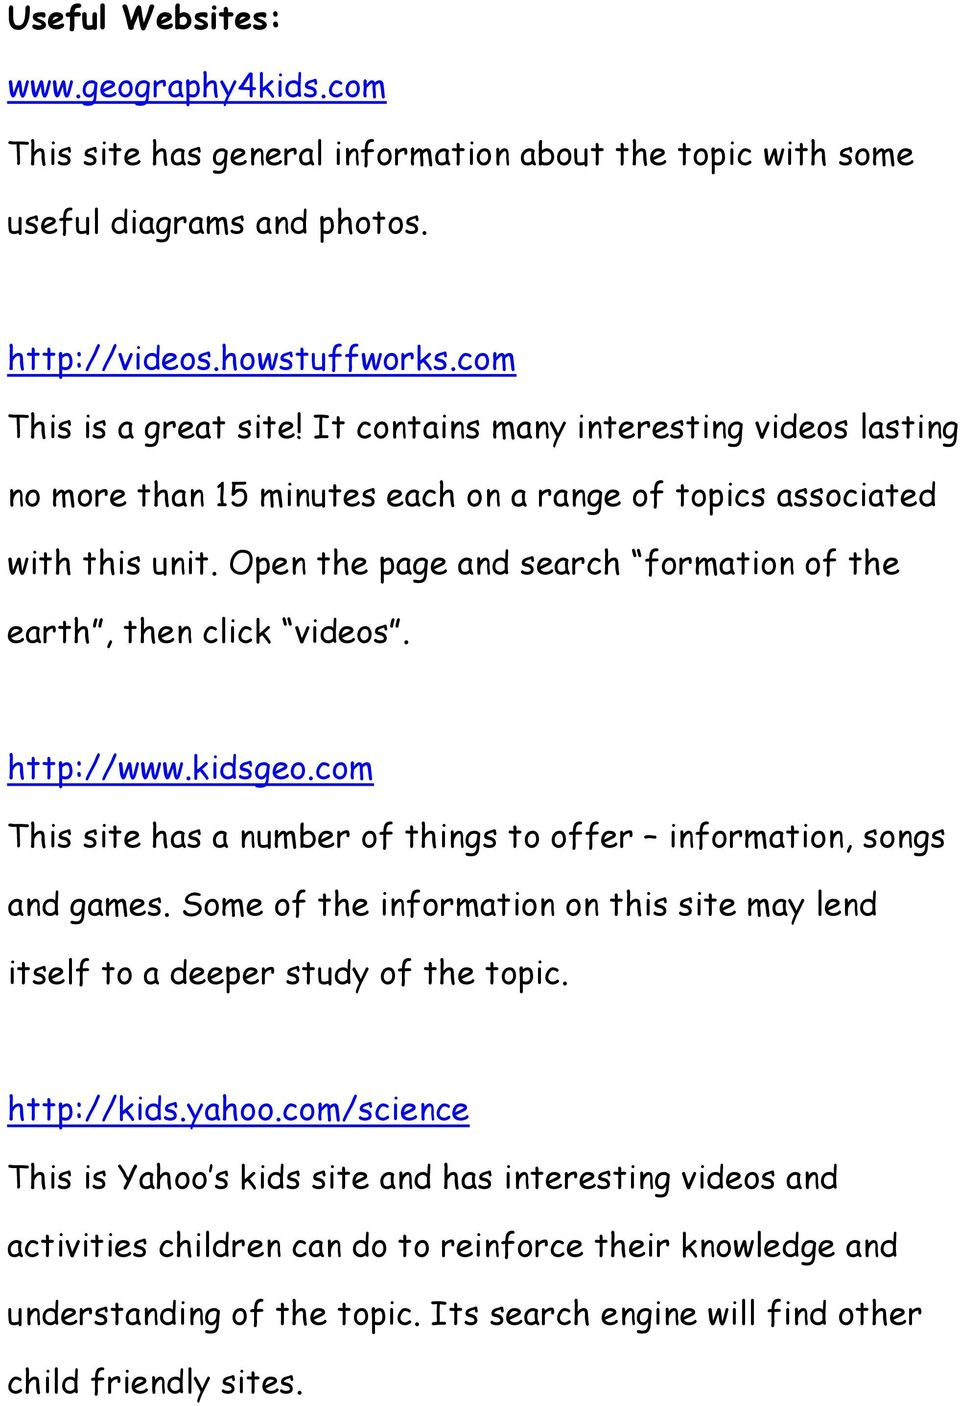 http://www.kidsgeo.com This site has a number of things to offer information, songs and games. Some of the information on this site may lend itself to a deeper study of the topic. http://kids.